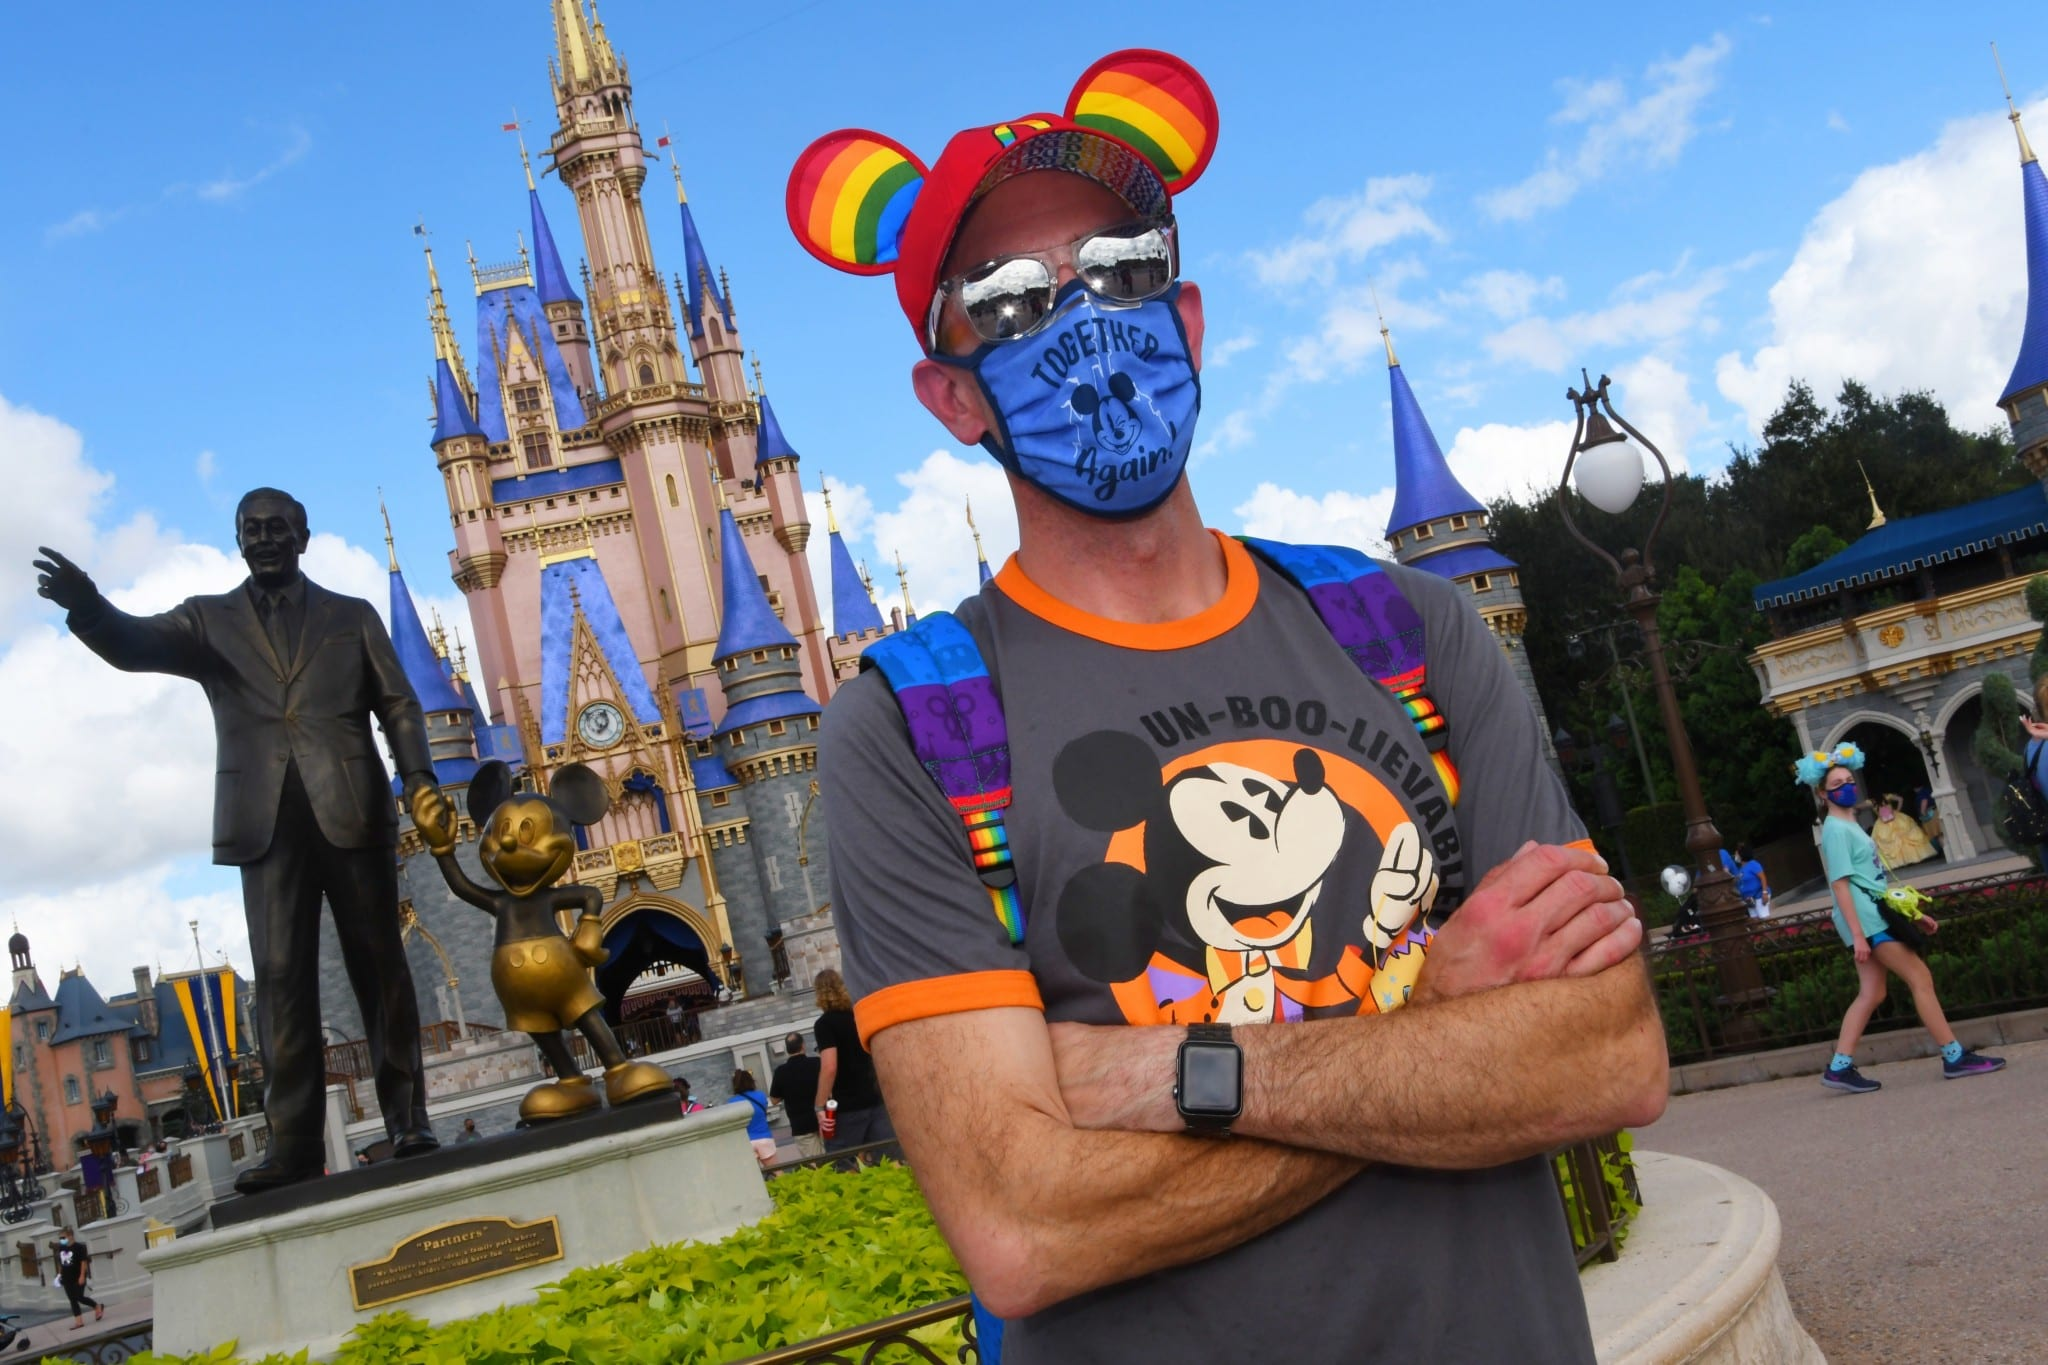 Looking For Magic in 2020: My Pilgrimage to Disney World